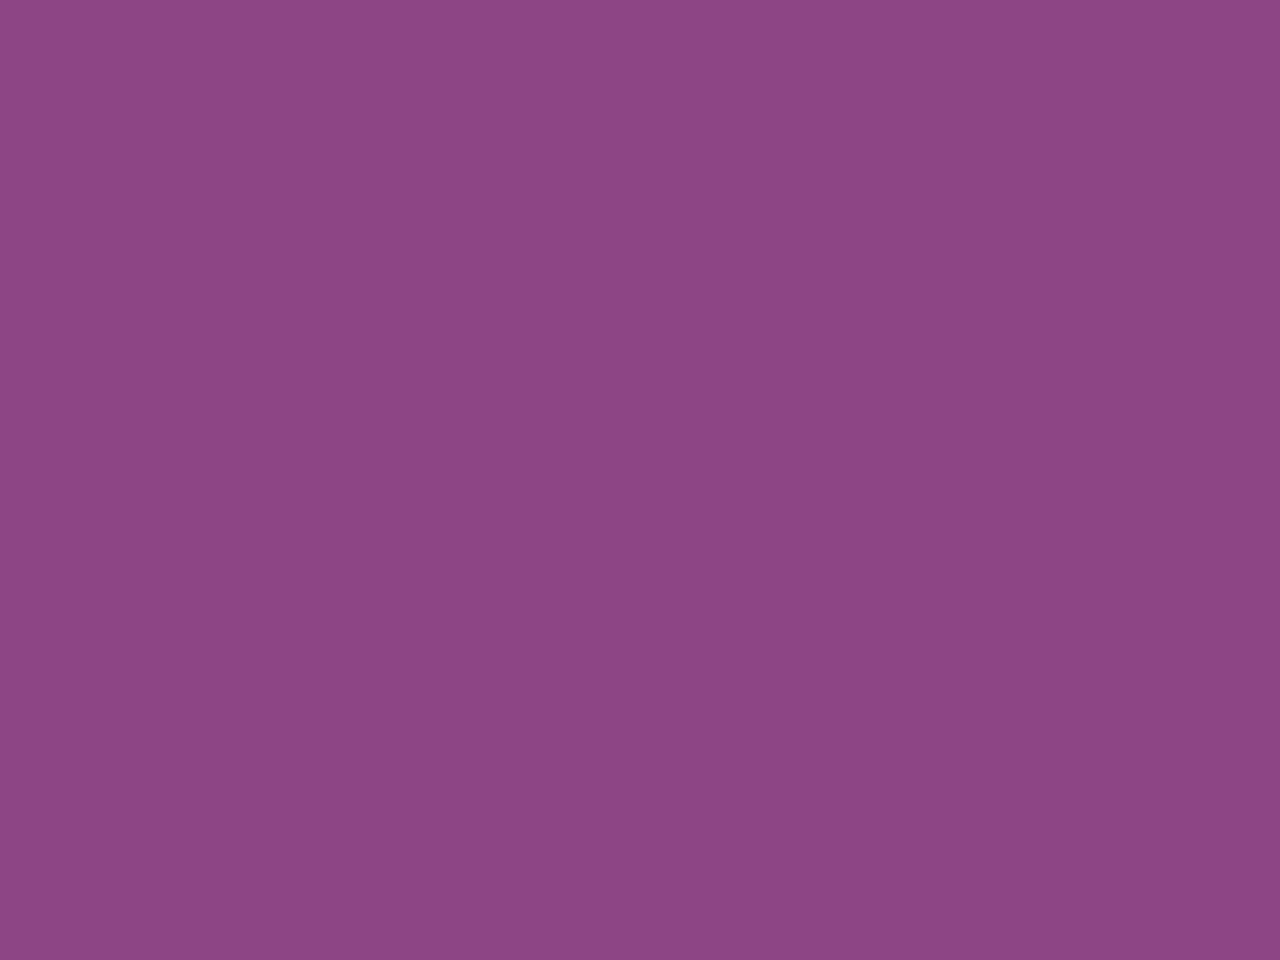 1280x960 Plum Traditional Solid Color Background